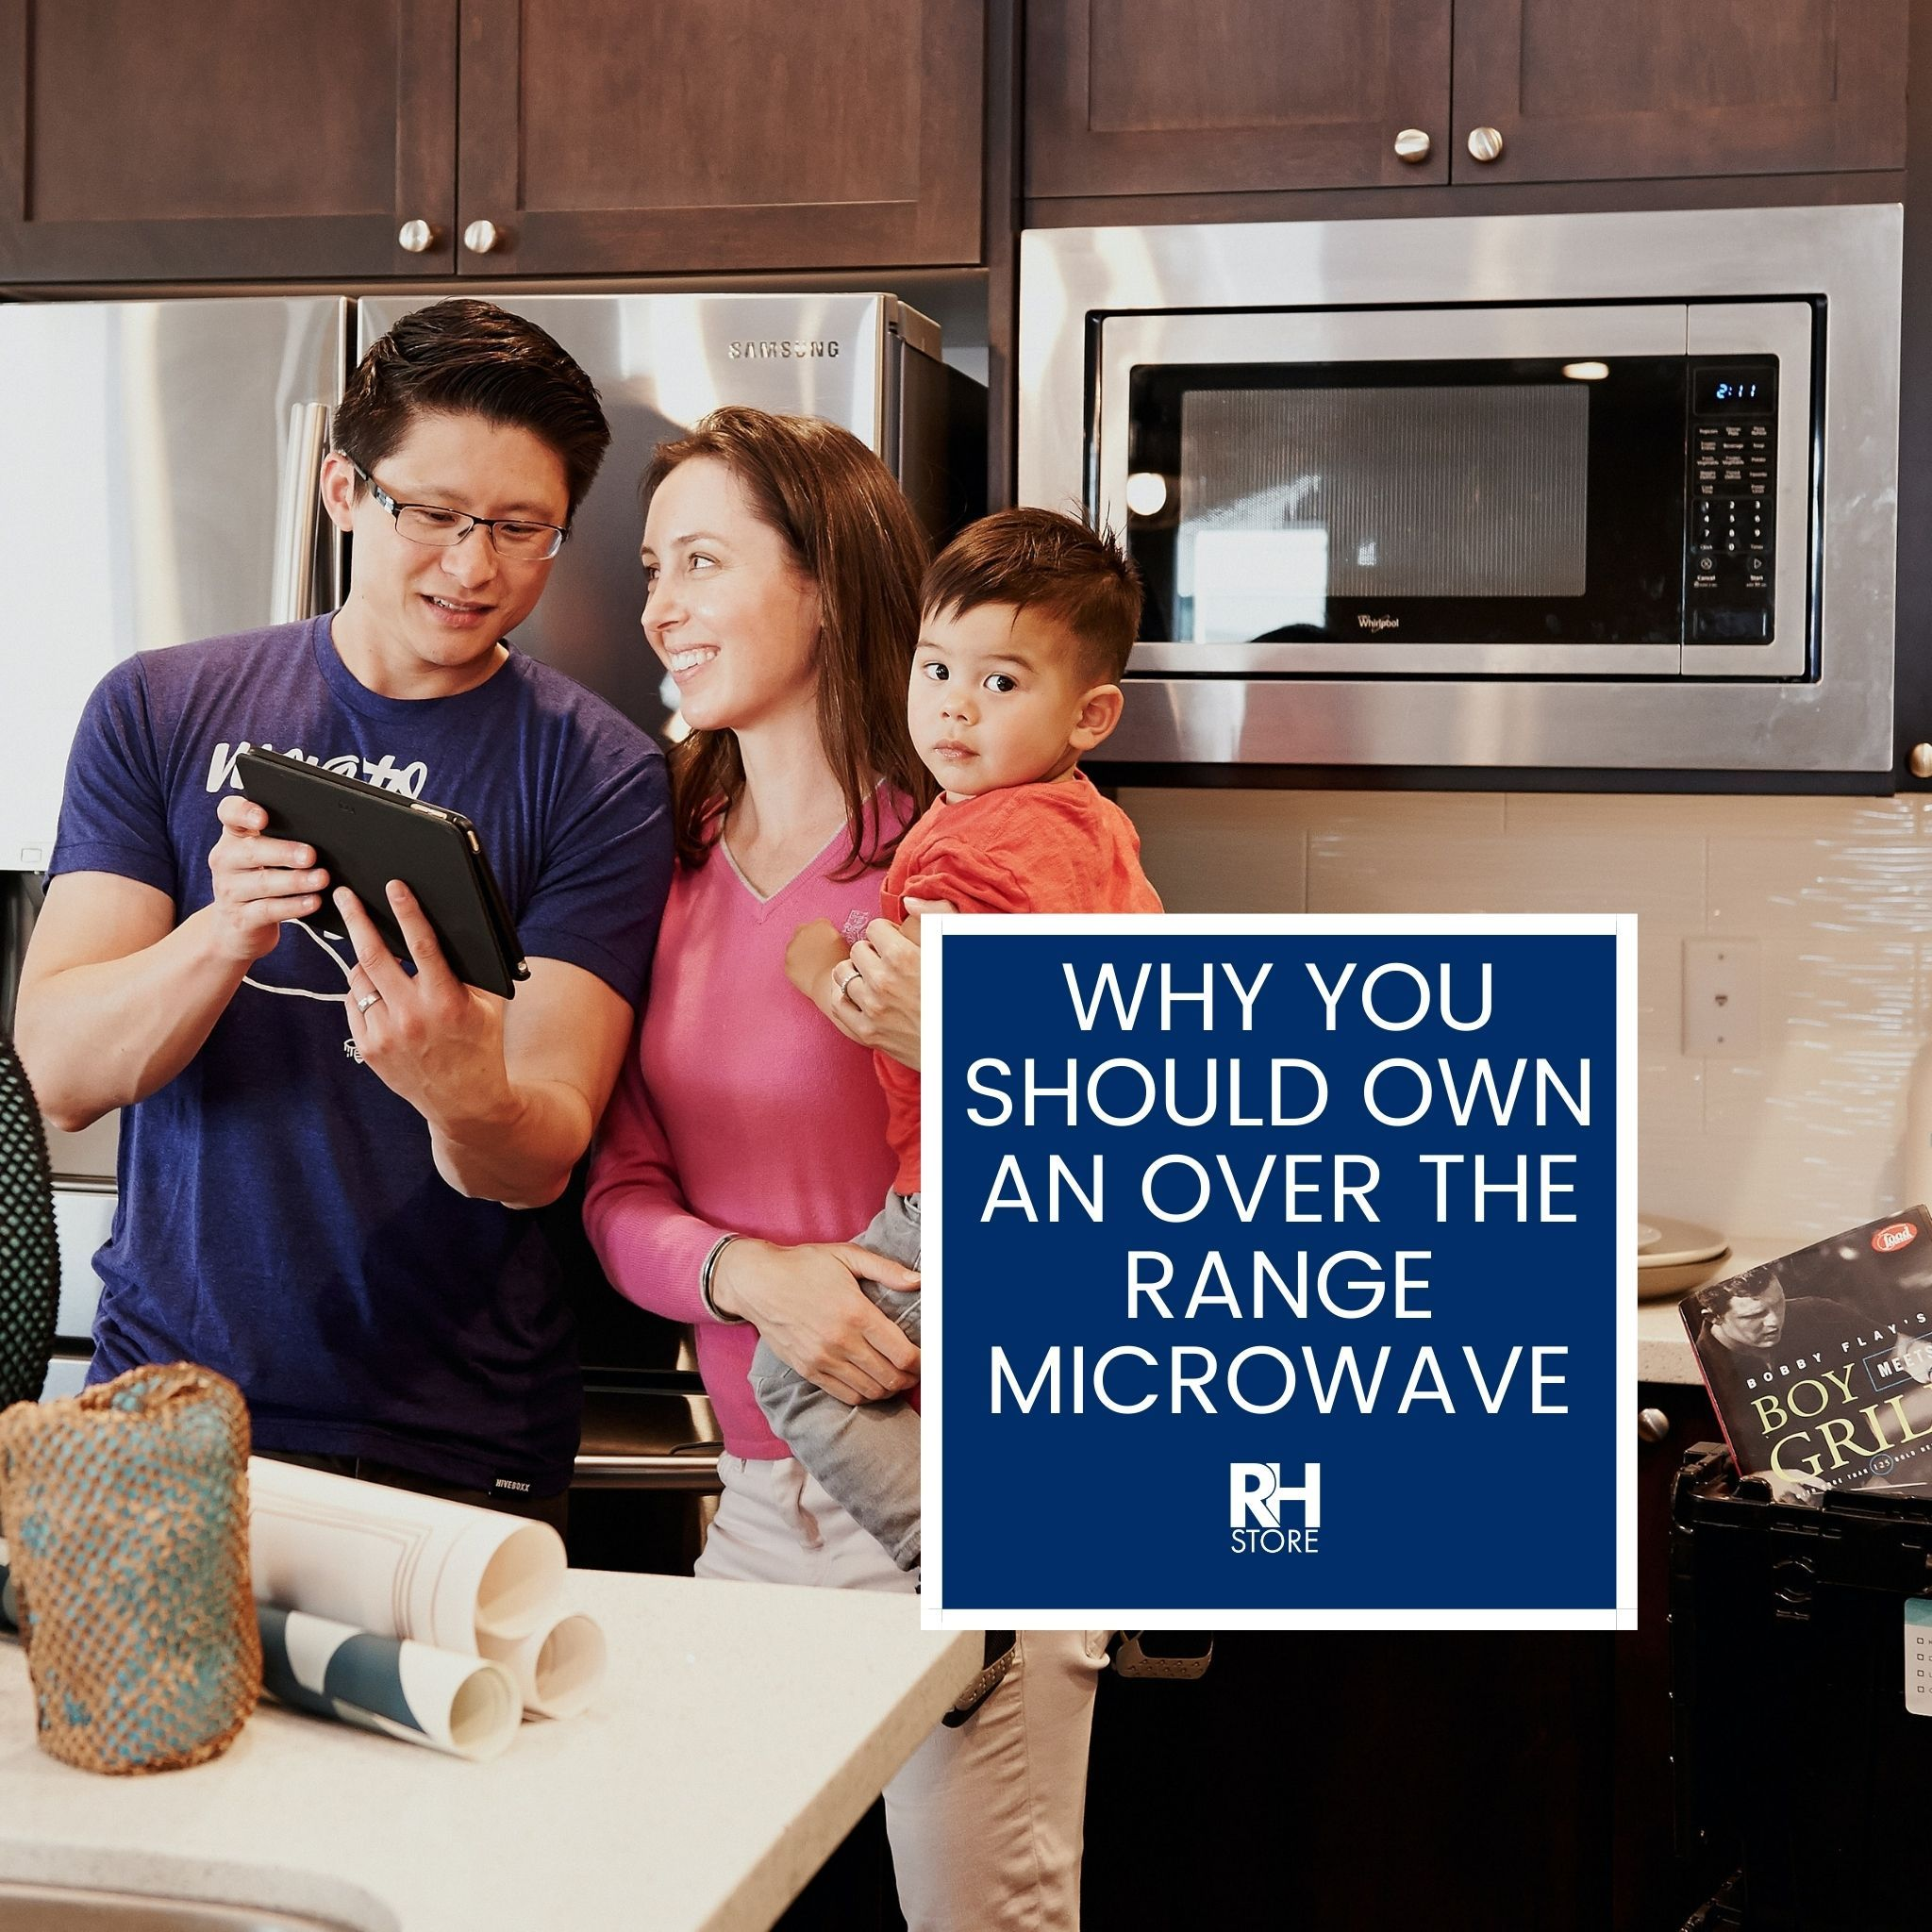 Why You Should Own an Over the Range Microwave